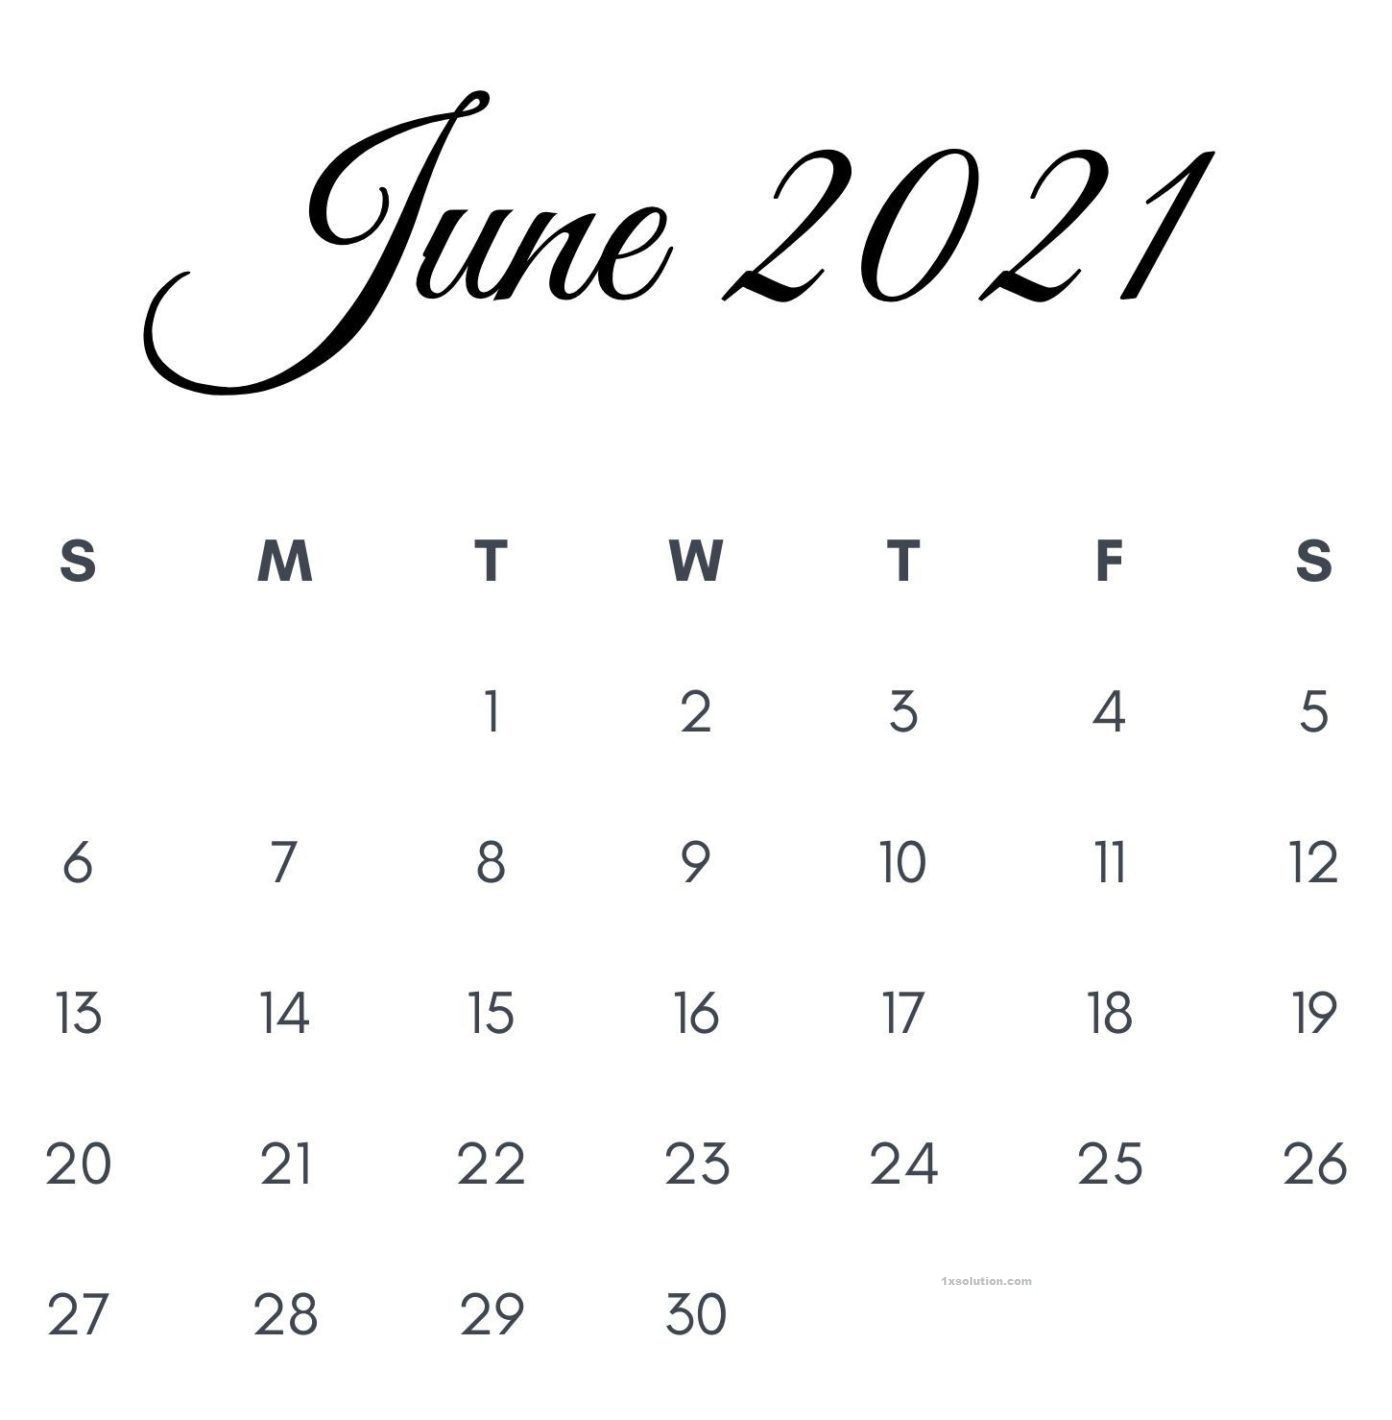 June 2021 Calendar Planner For work and Meeting